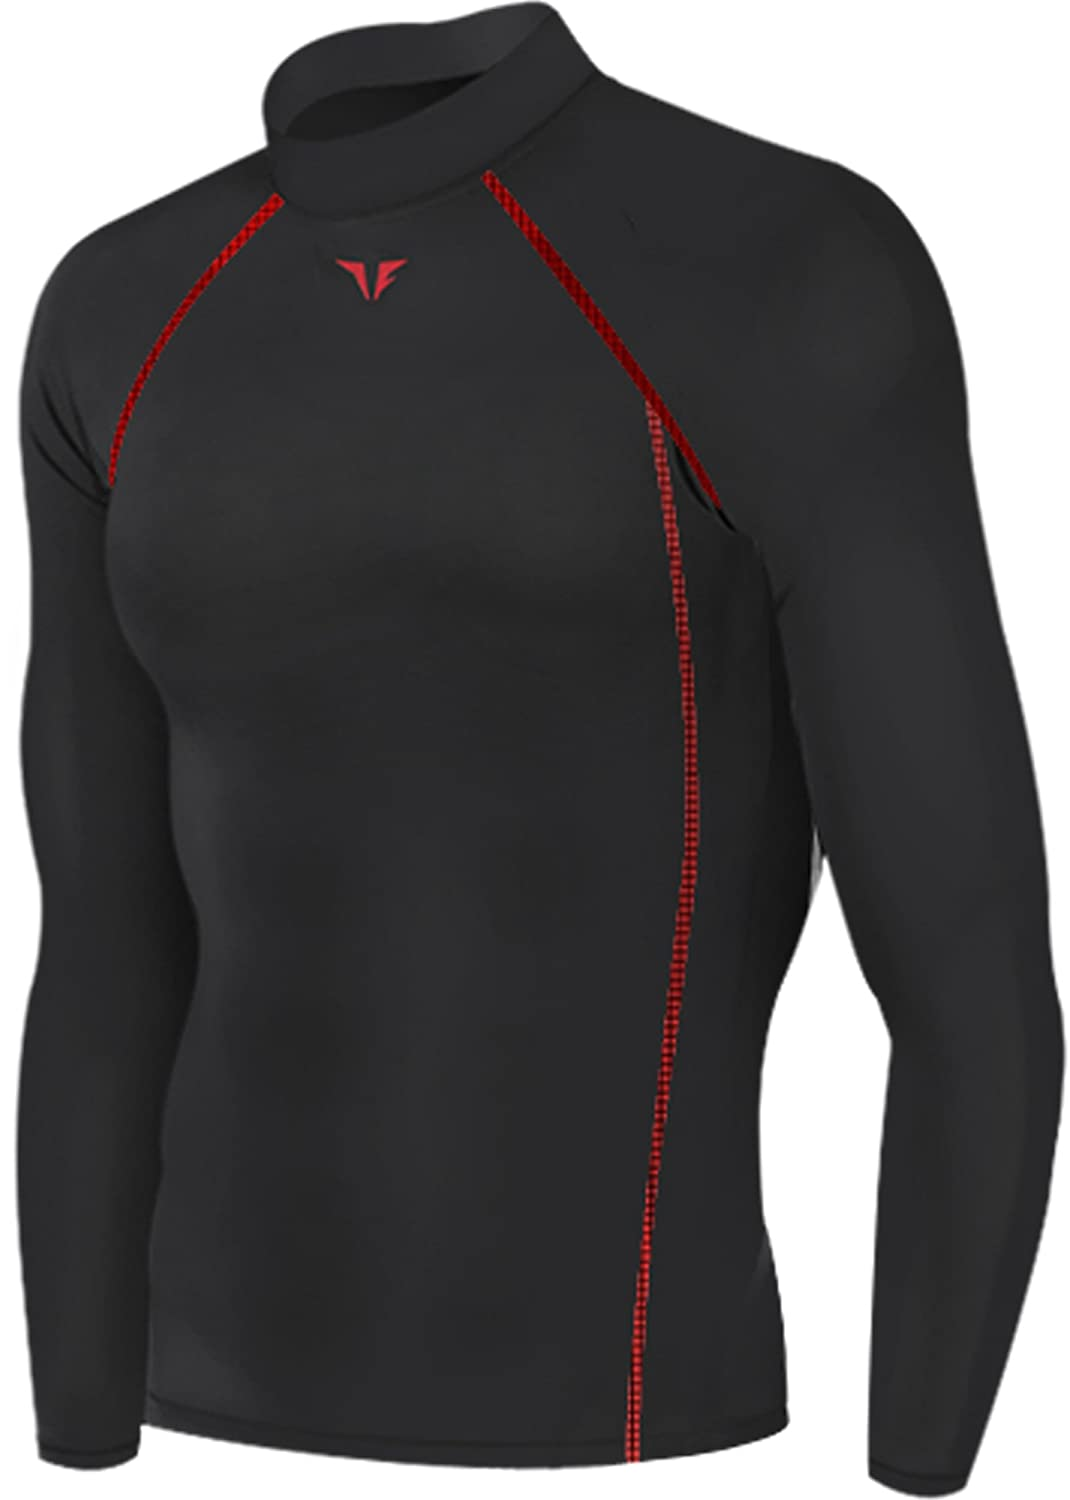 New 199 Black Skin Tights Compression Base Layer Running Long Sleeve Top Mens JustOneStyle